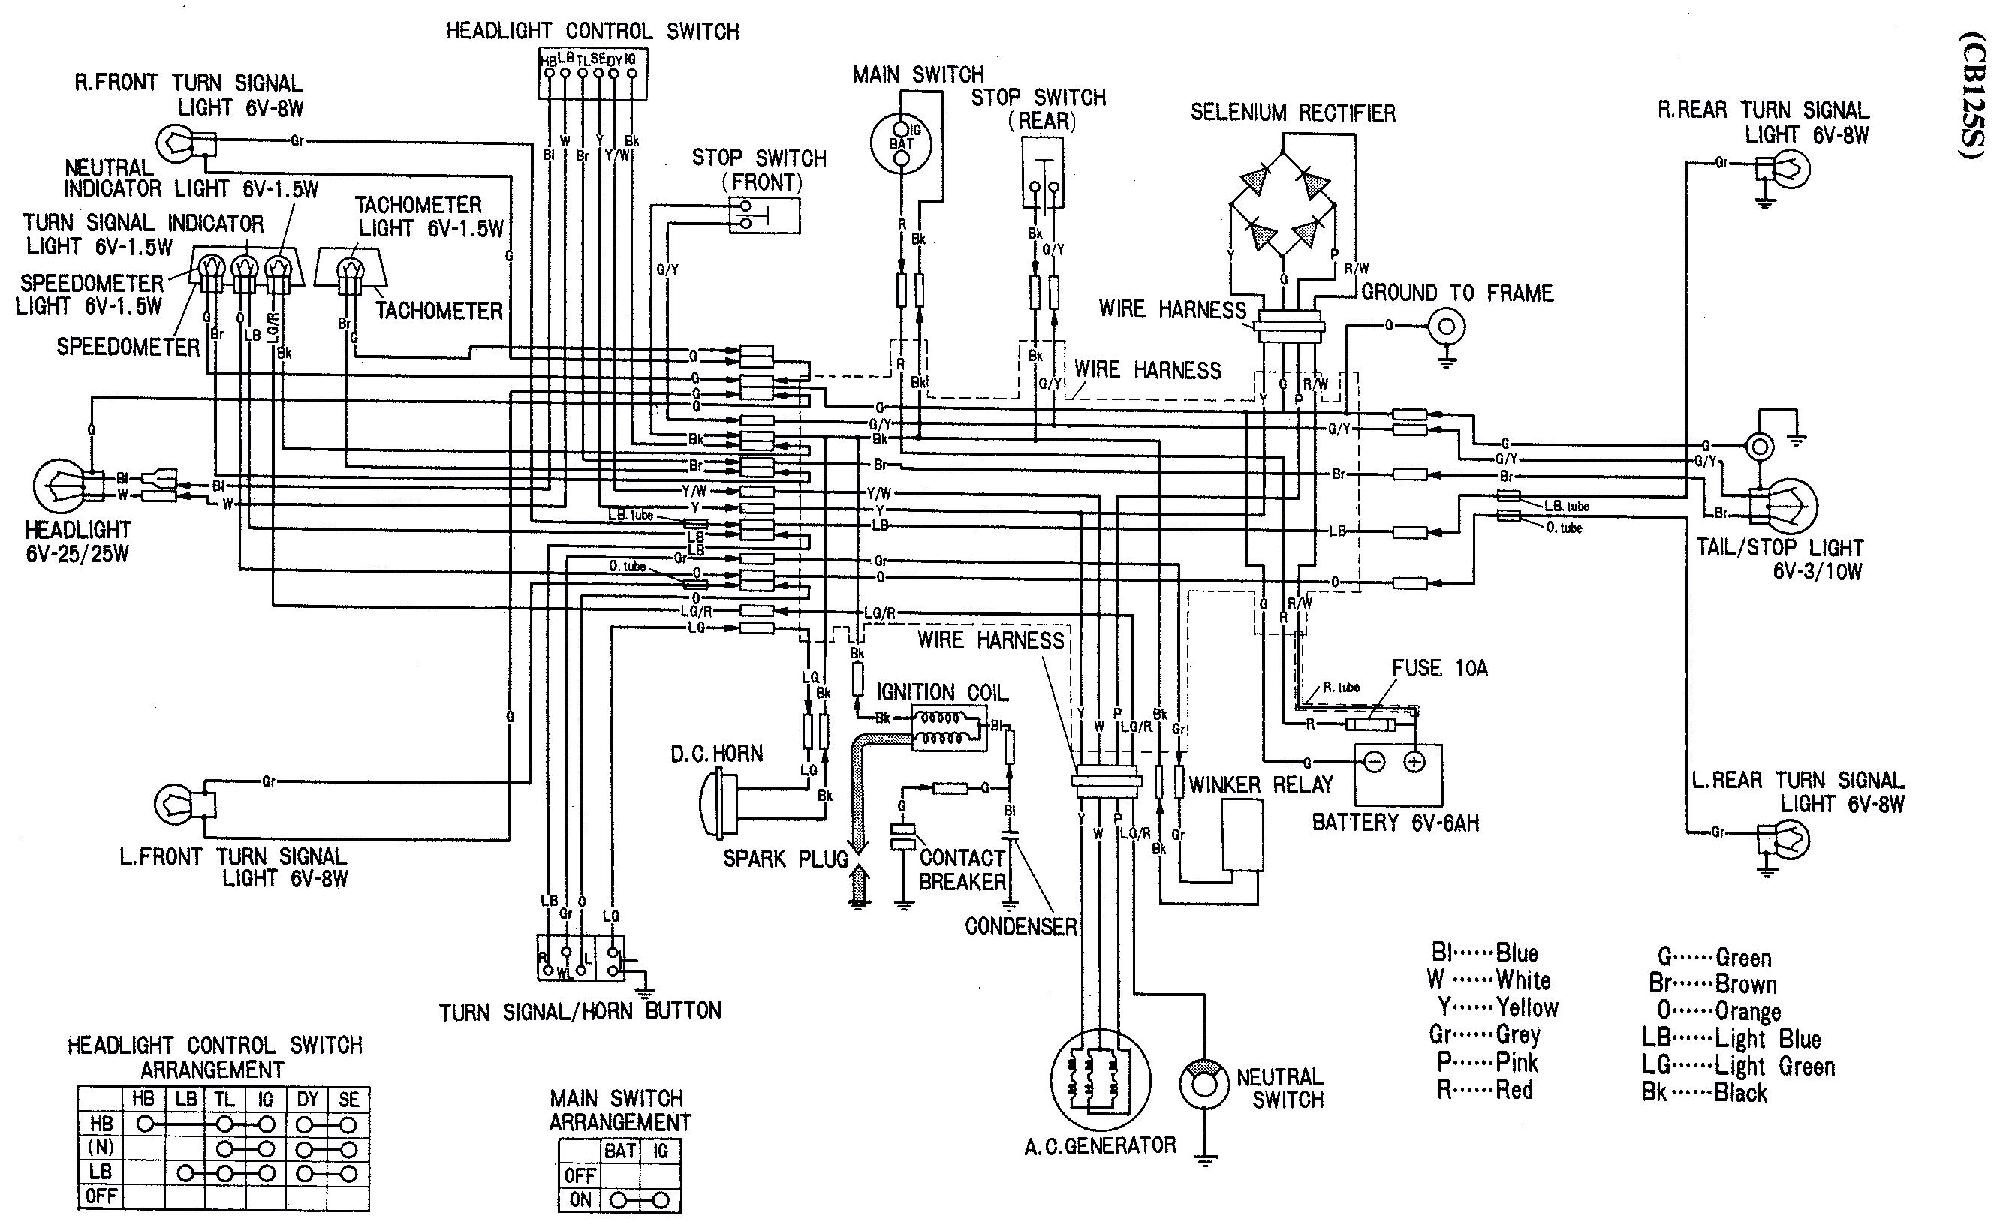 78 Honda Cb 125 Wiring Diagram 30 Images With Magna On General Electric 202401d1505223794 Cb125 No Key Kill Switch 63397d1440032474 Cb125s Frying Image